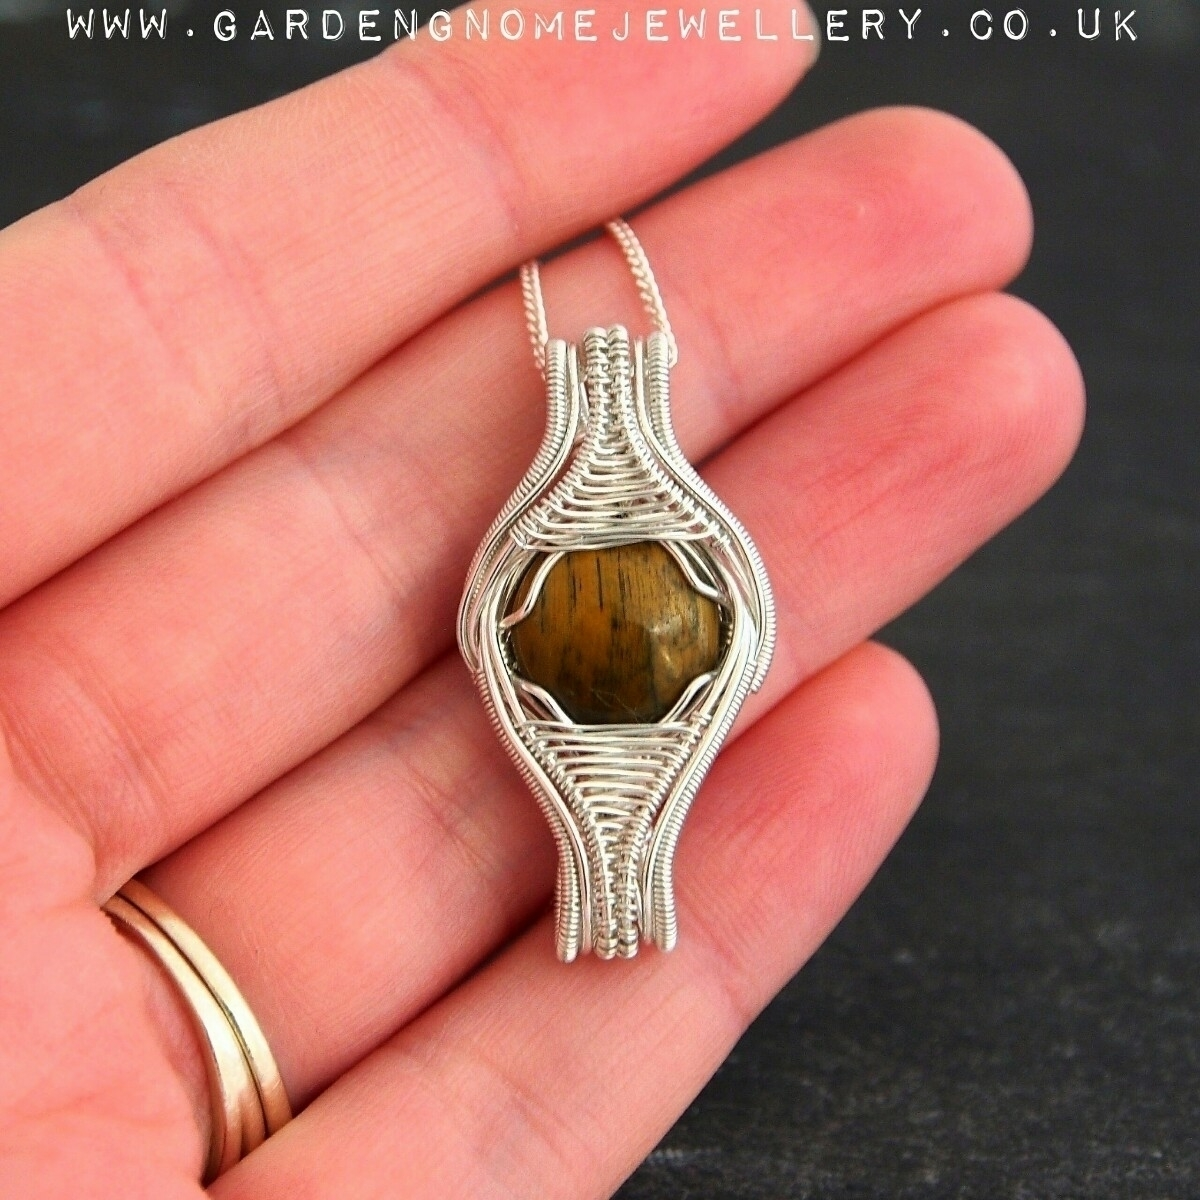 couple pieces weeks shop update - gardengnomejewellery | ello